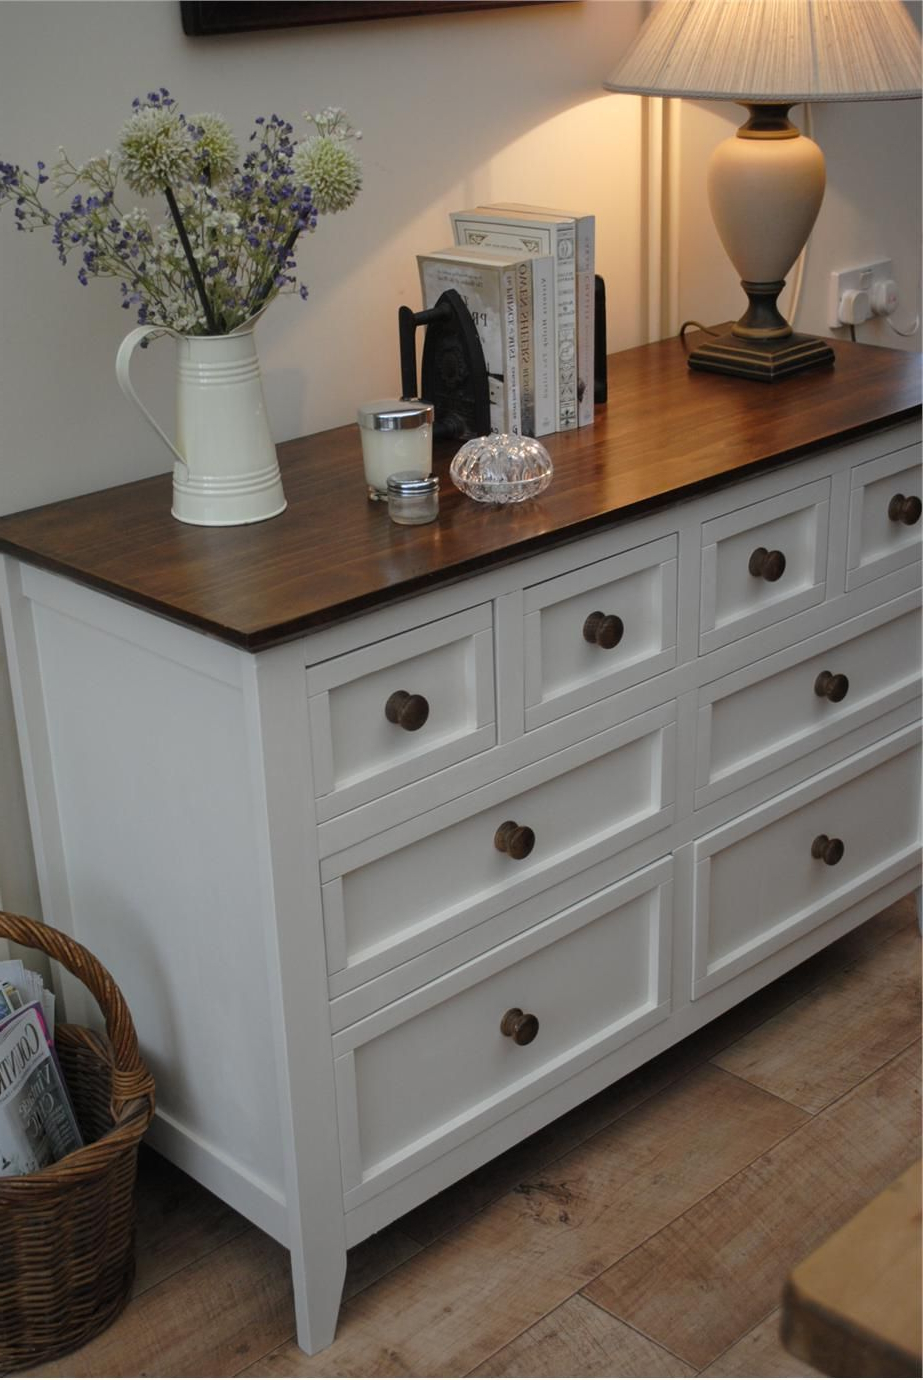 Or This – With Different Knobs And A White Or Grey Or Black Painted Pertaining To Widely Used Satin Black & Painted White Sideboards (View 14 of 20)